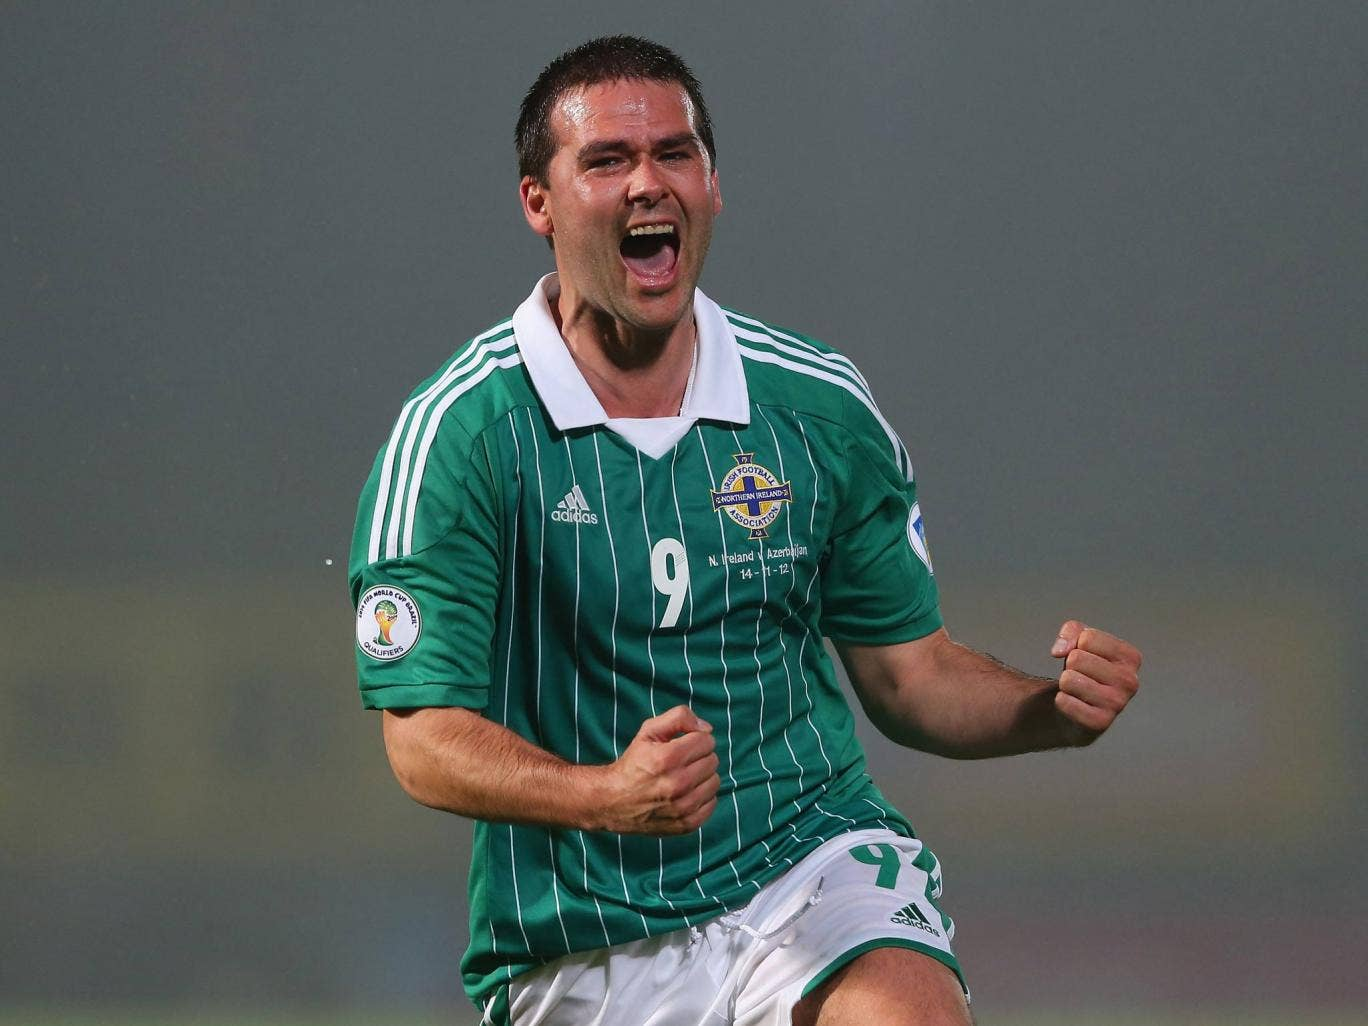 Norther Ireland international David Healy